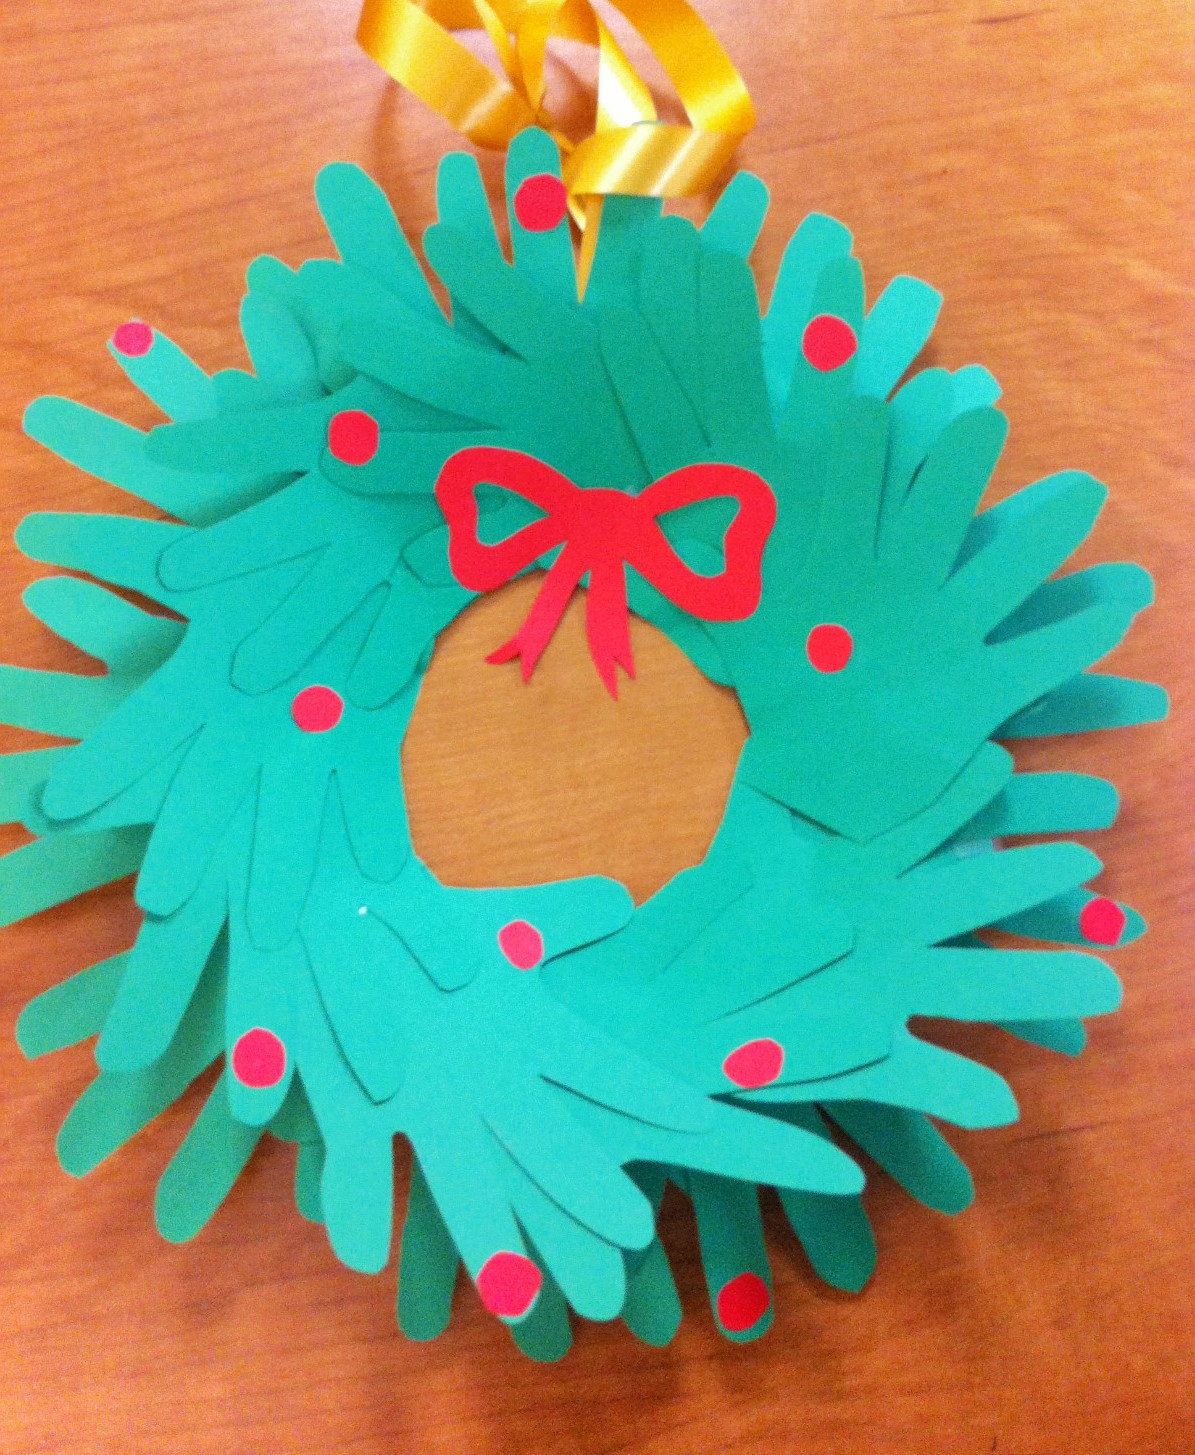 Easy Paper Craft Ideas For Kids Easy Construction Paper Crafts For Christmas Find Craft Ideas